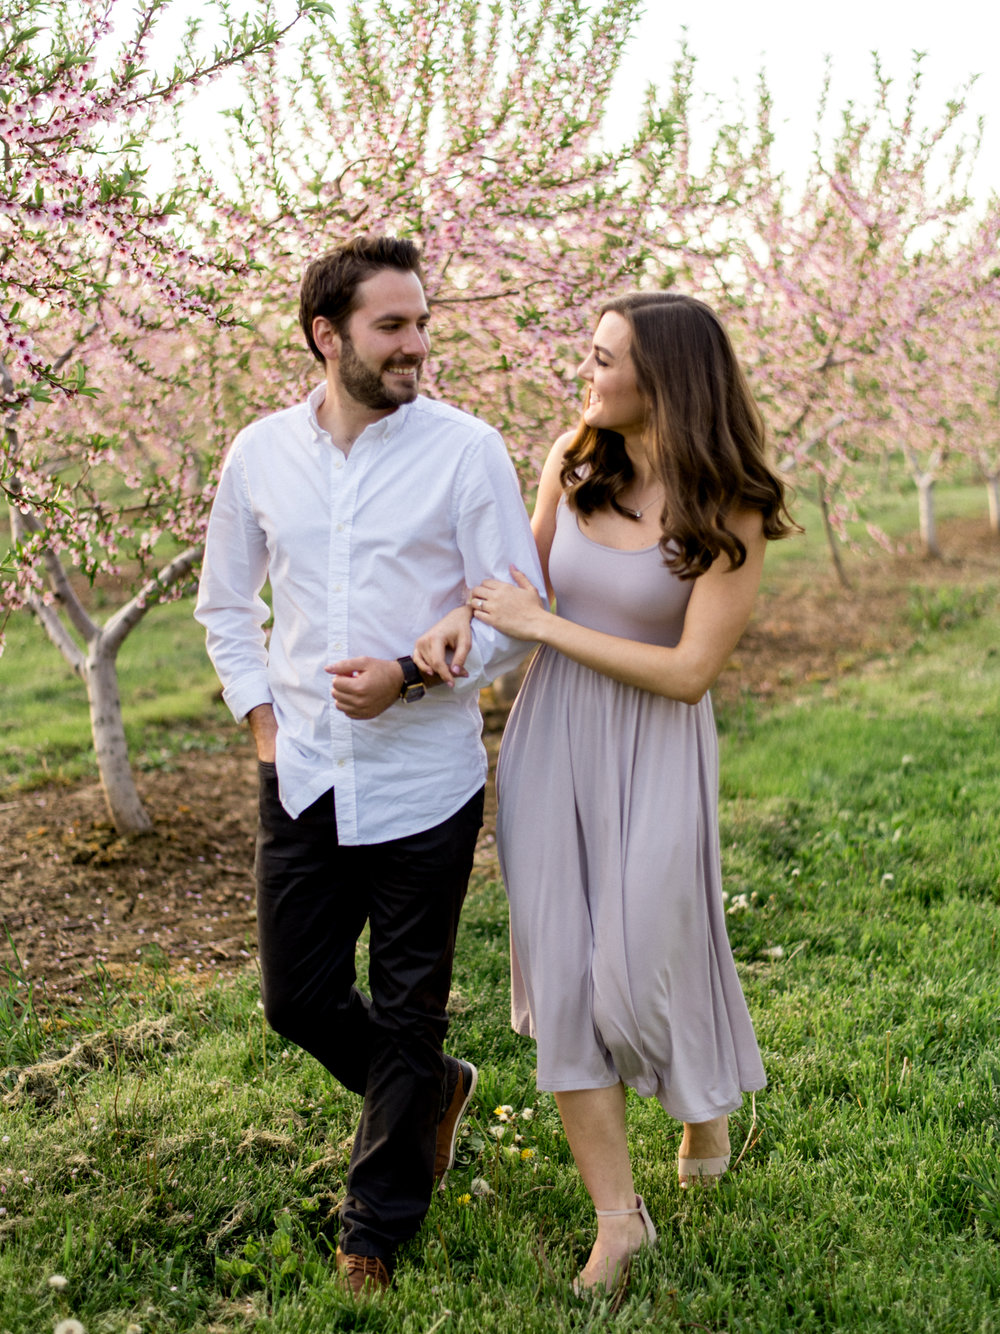 Chris & Heather's Engagement Session in Vineland Ontario Spring Blossoms Trees by Hush Hush Photography & Film Aidan Hennebry - 5.jpg